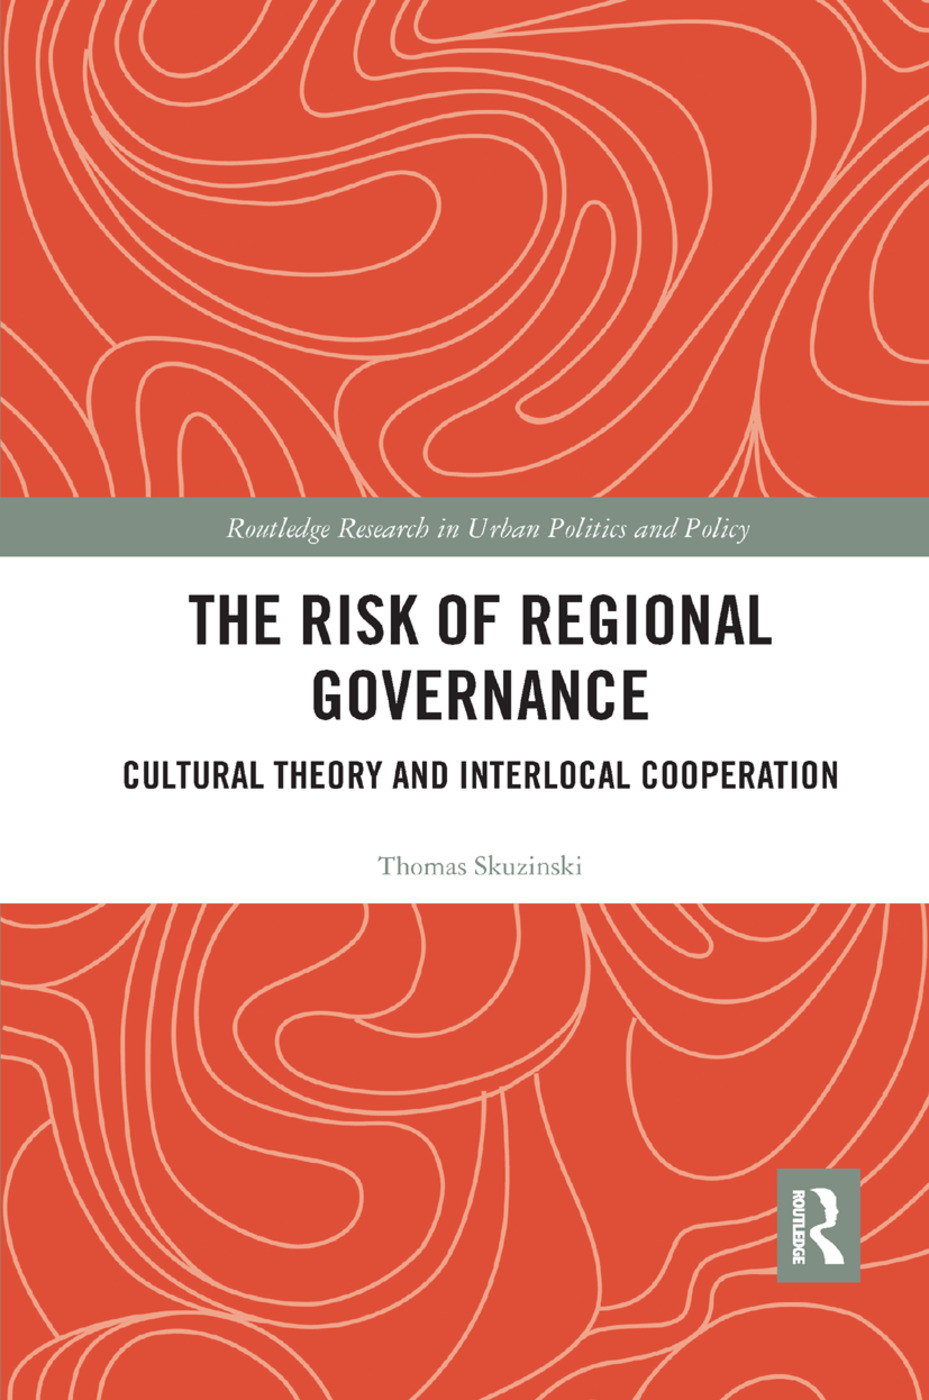 The Risk of Regional Governance: Cultural Theory and Interlocal Cooperation book cover